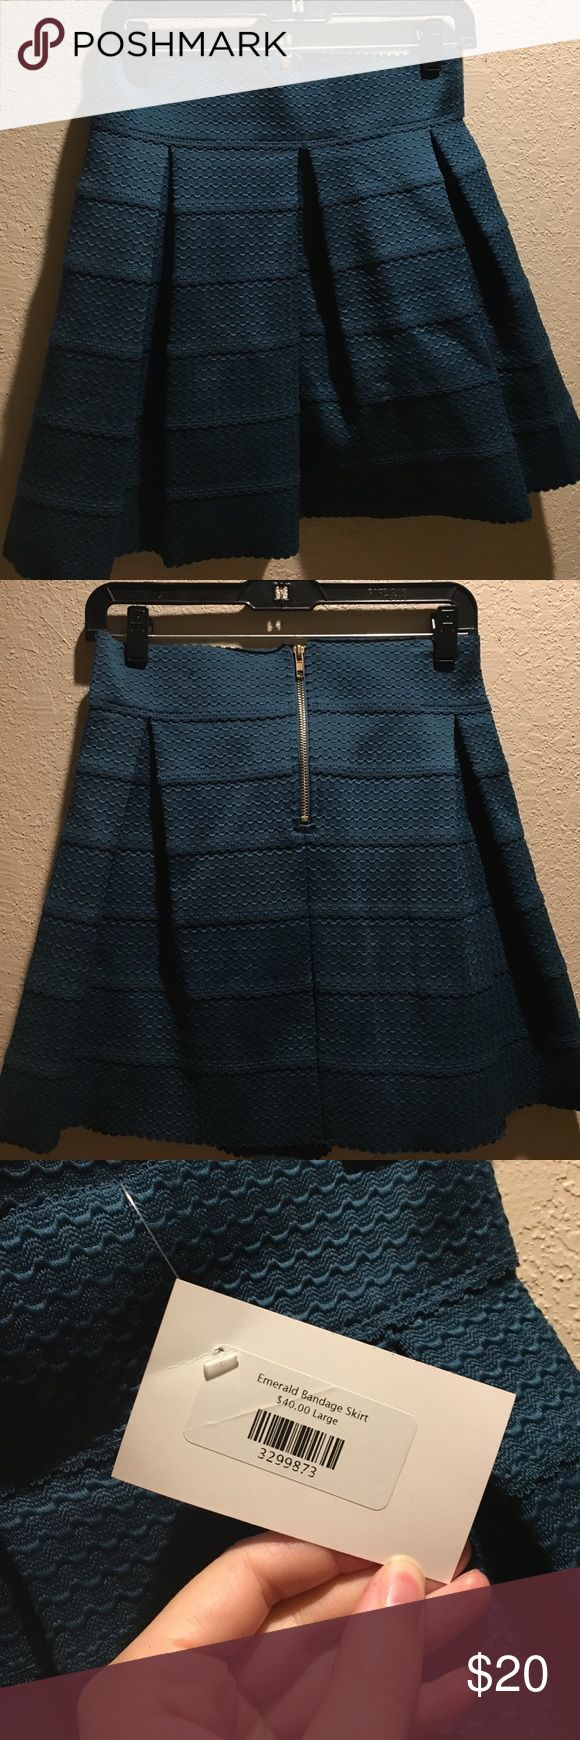 PRICE DROP! ⬇️ NWT Emerald bandage skirt The PERFECT green for holiday parties!! So flattering! Emerald green skater skirt. Zipper back detail. Can be worn on the hips or above depending on where you want it to fall. Brand new, never worn! Skirts Circle & Skater